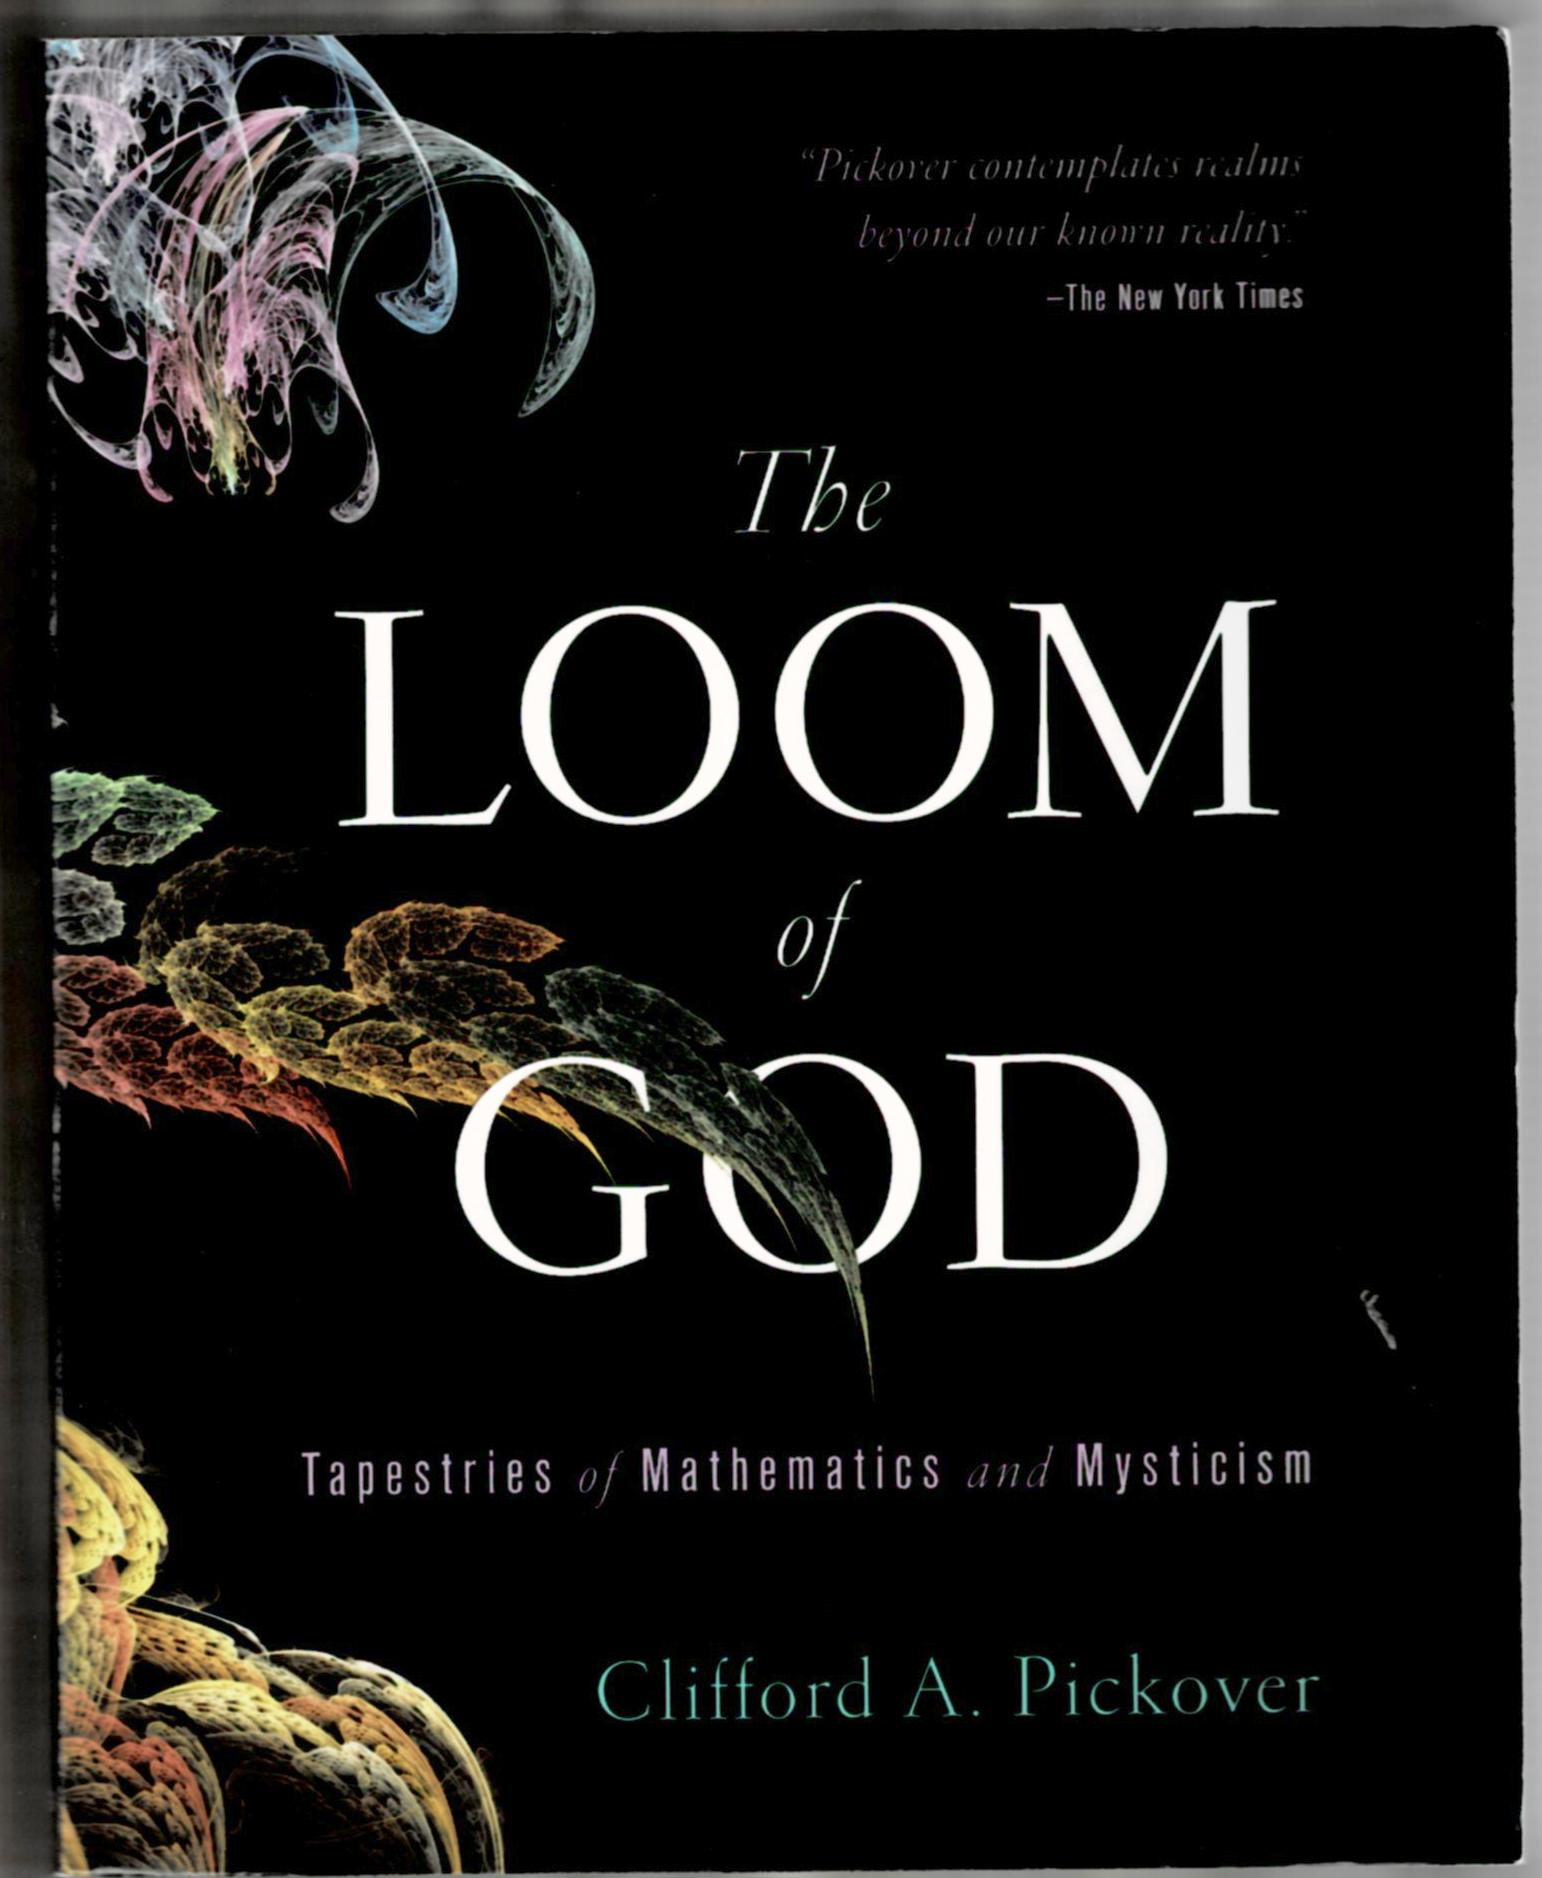 Image for The Loom of God: Tapestries of Mathematics and Mysticism